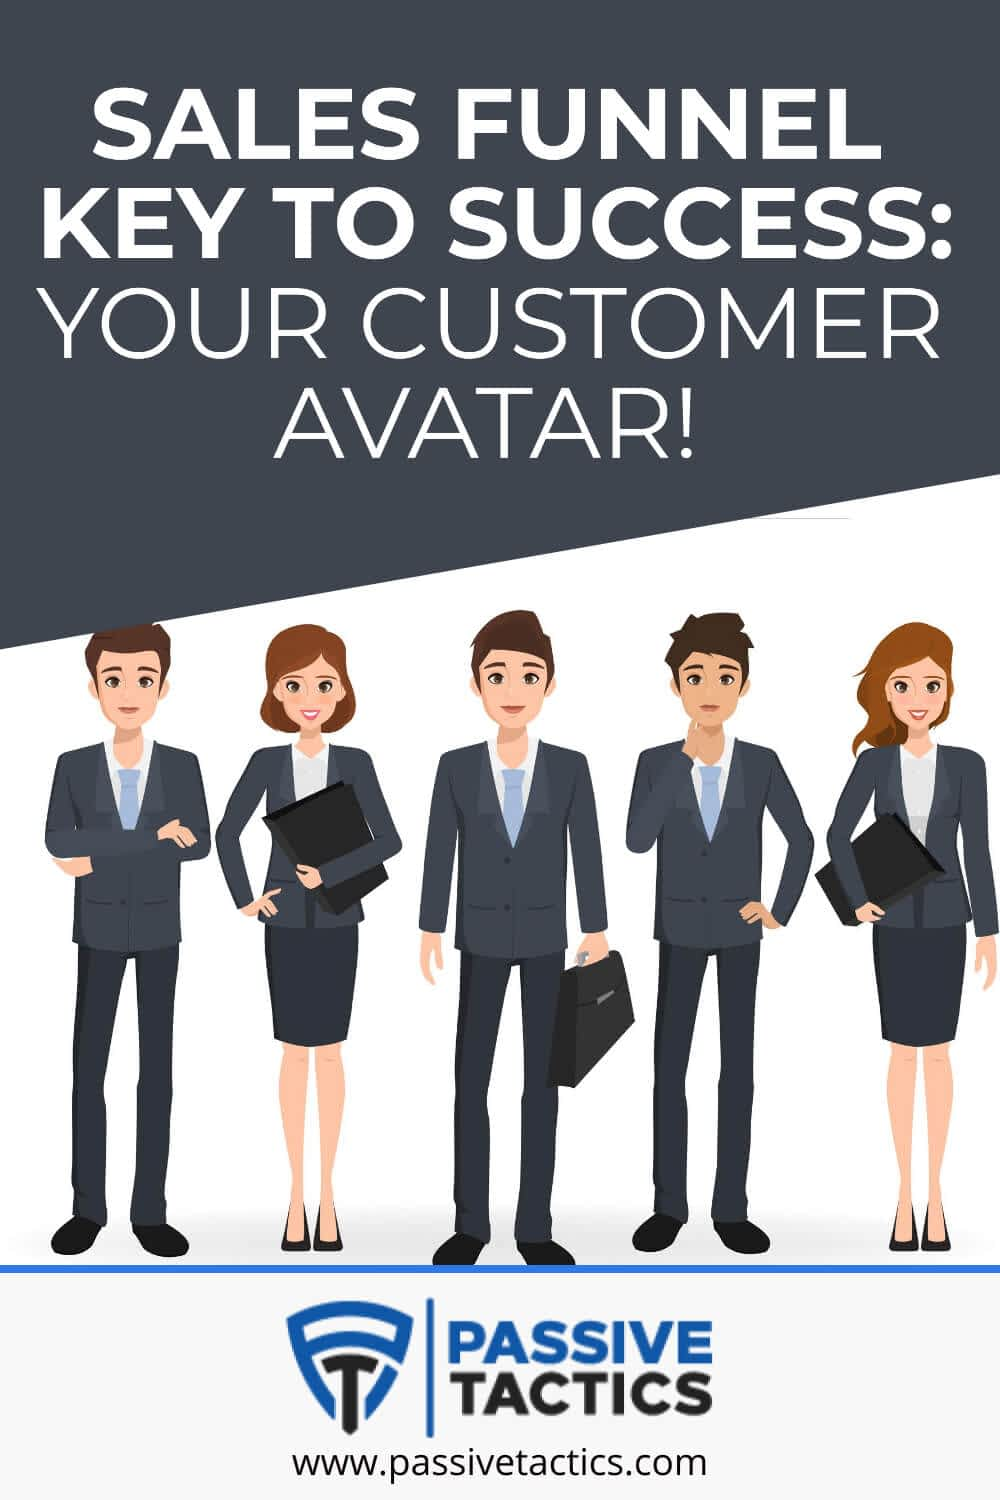 Sales Funnel Key To Success: Your Customer Avatar!